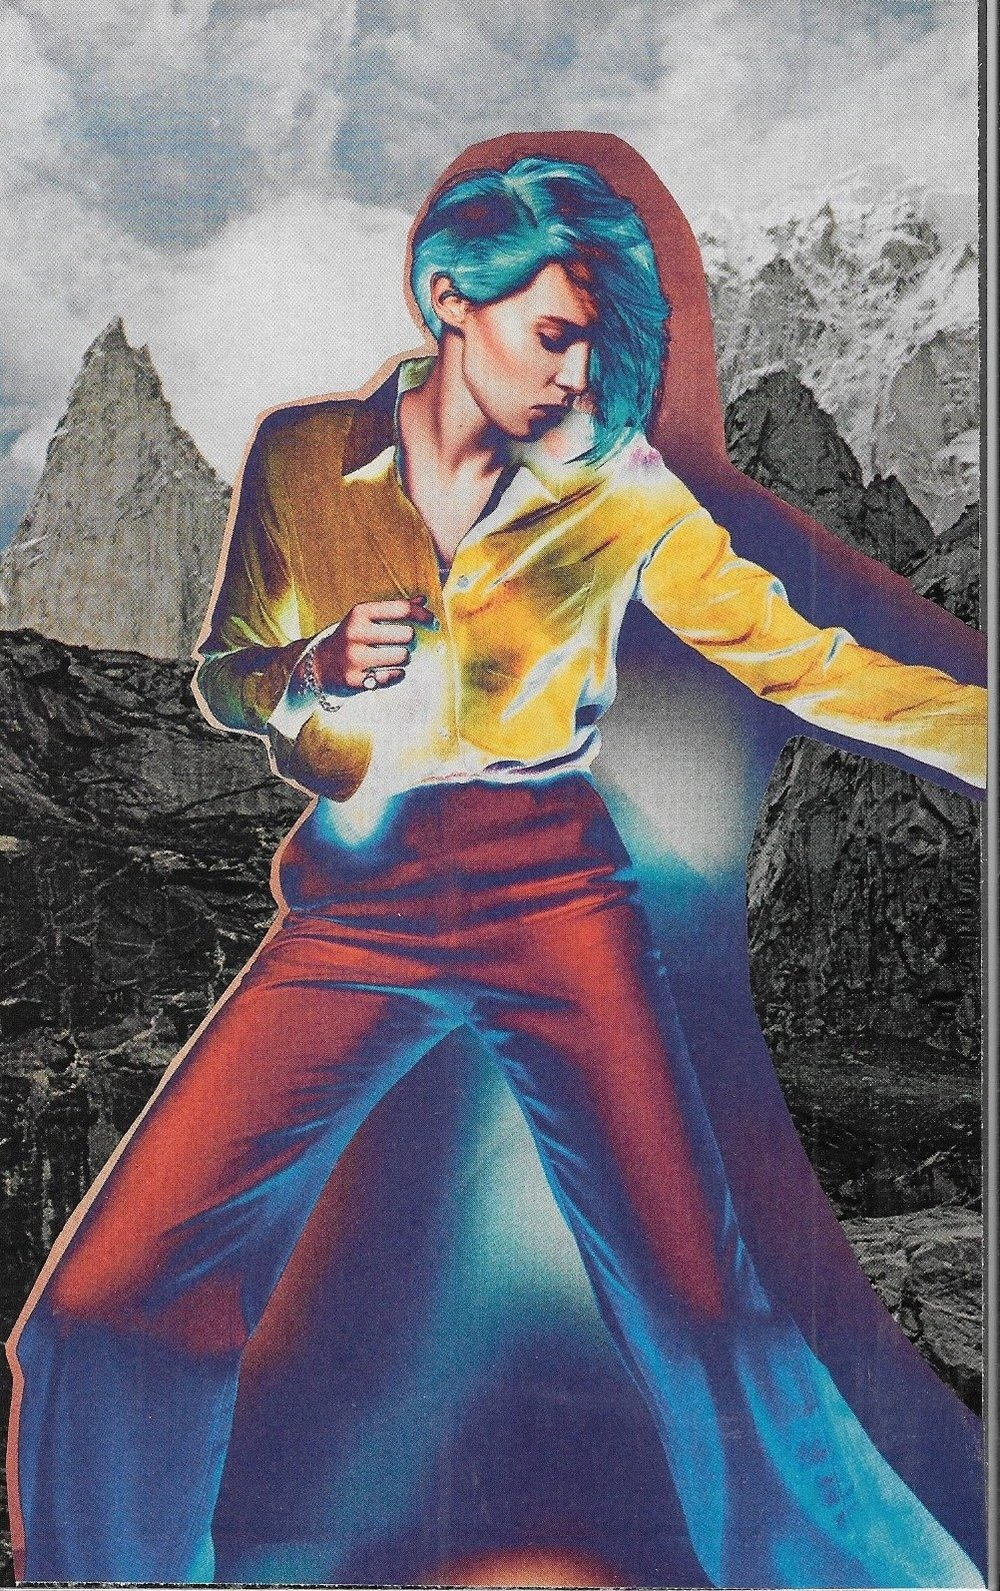 electric girl in mountains2.jpg